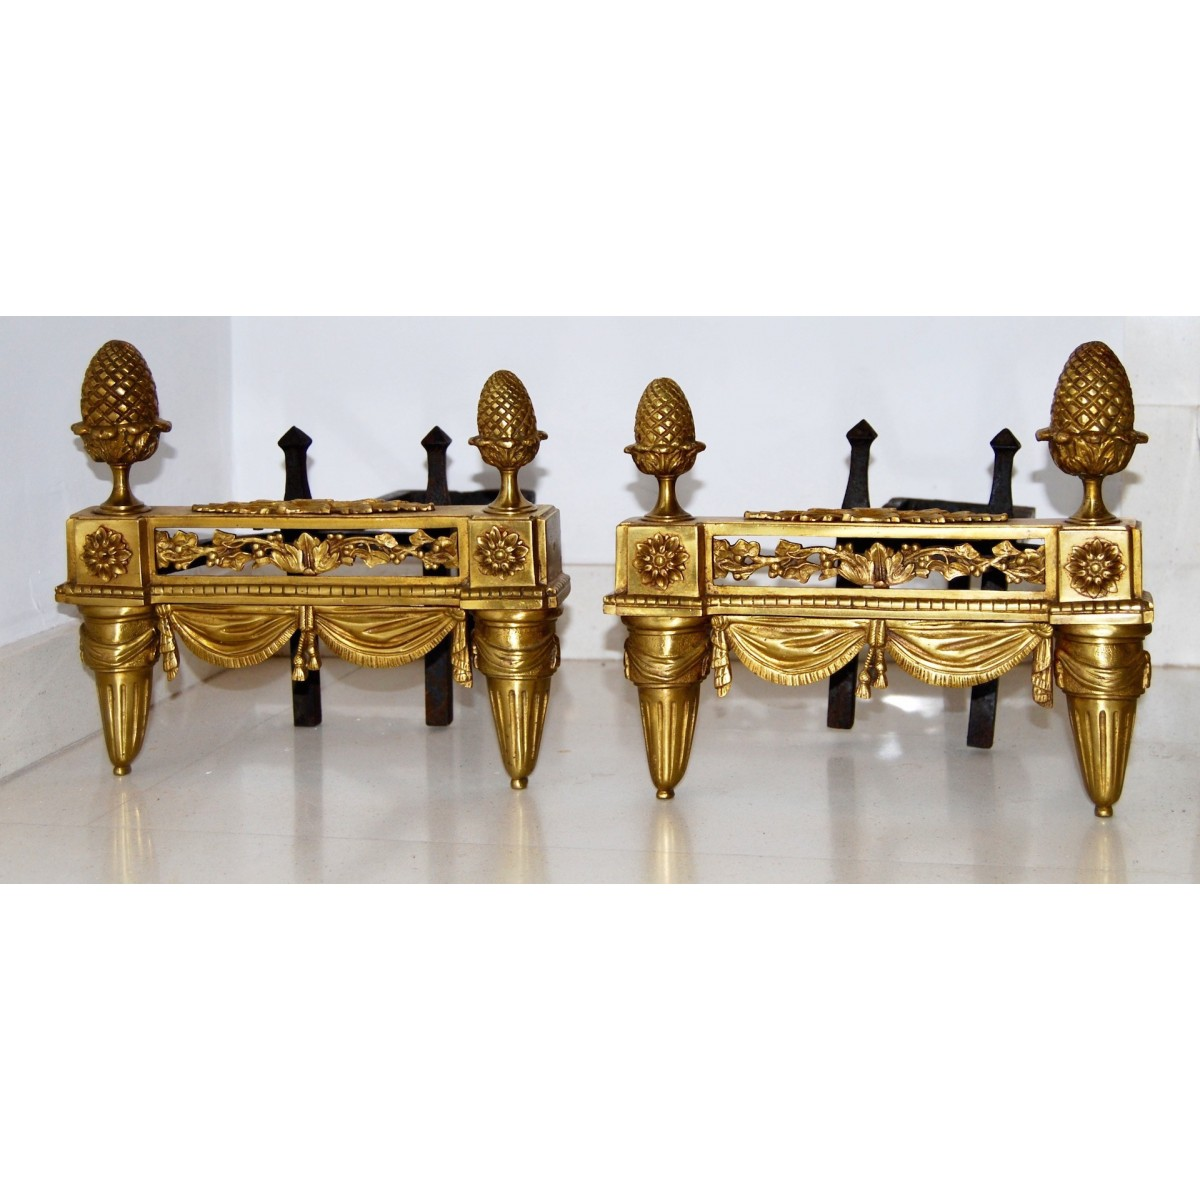 Andirons from 18th century